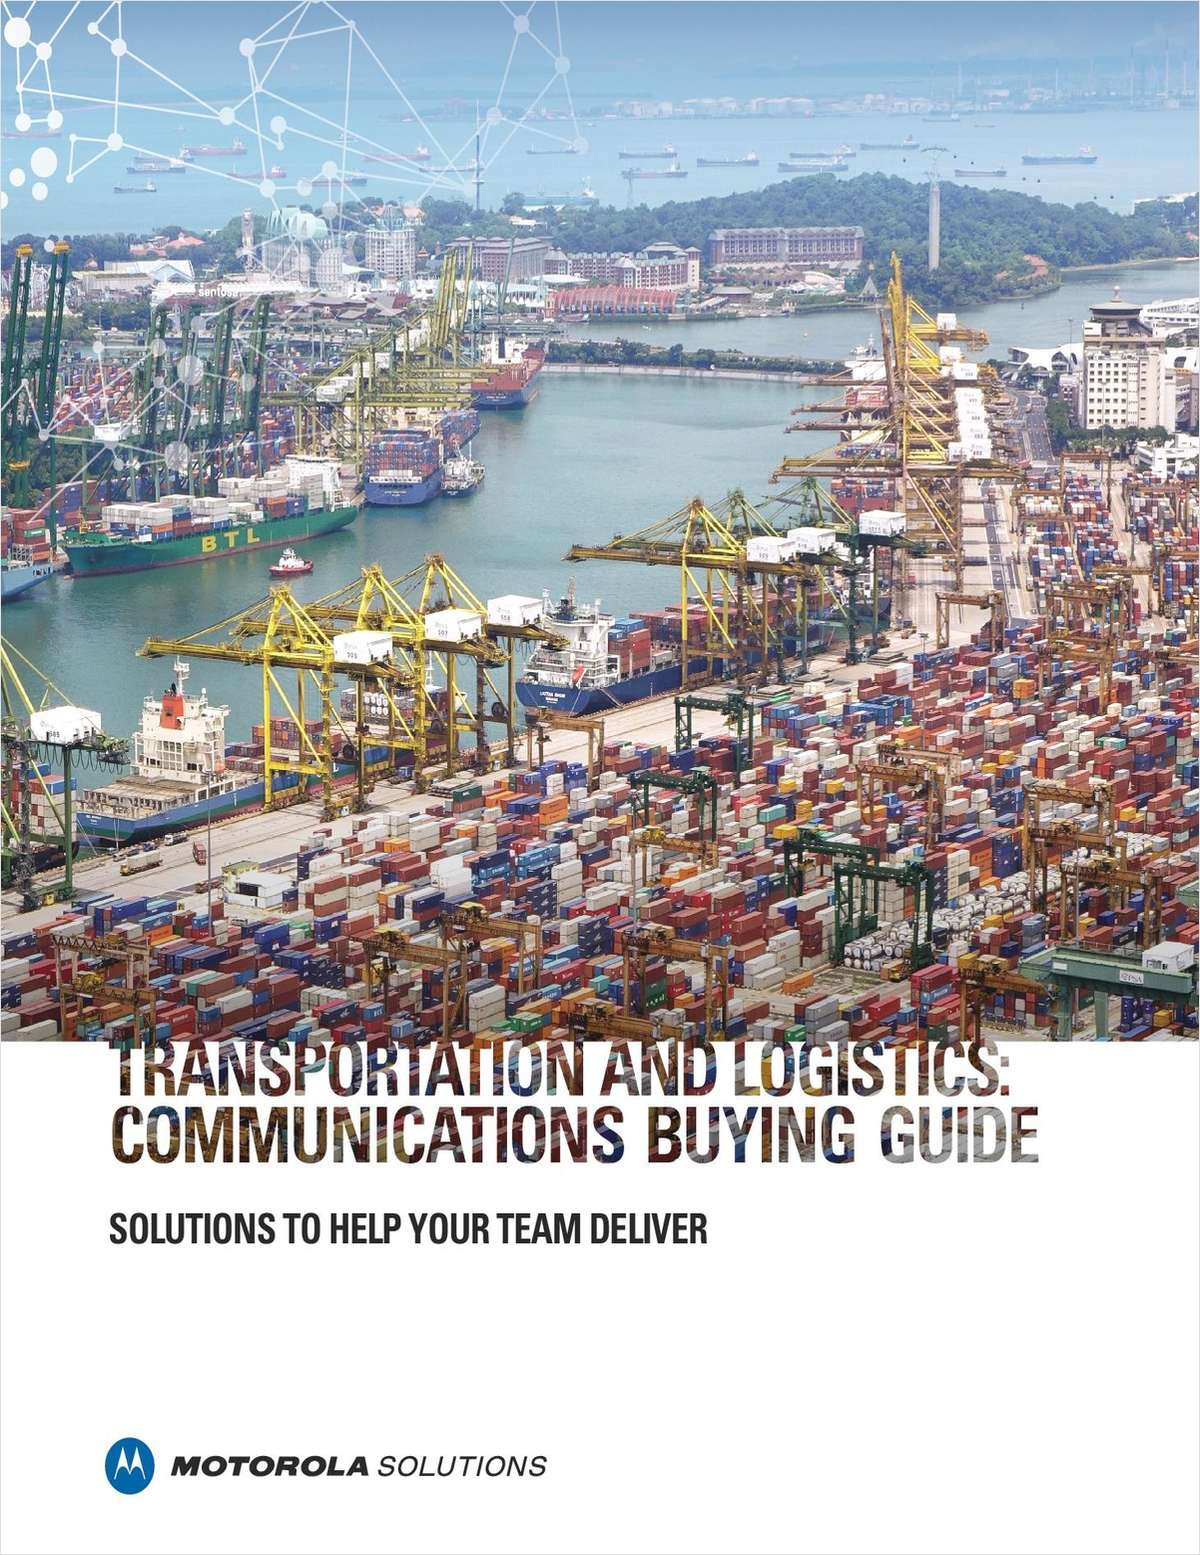 Transportation and Logistics Communications Buying Guide